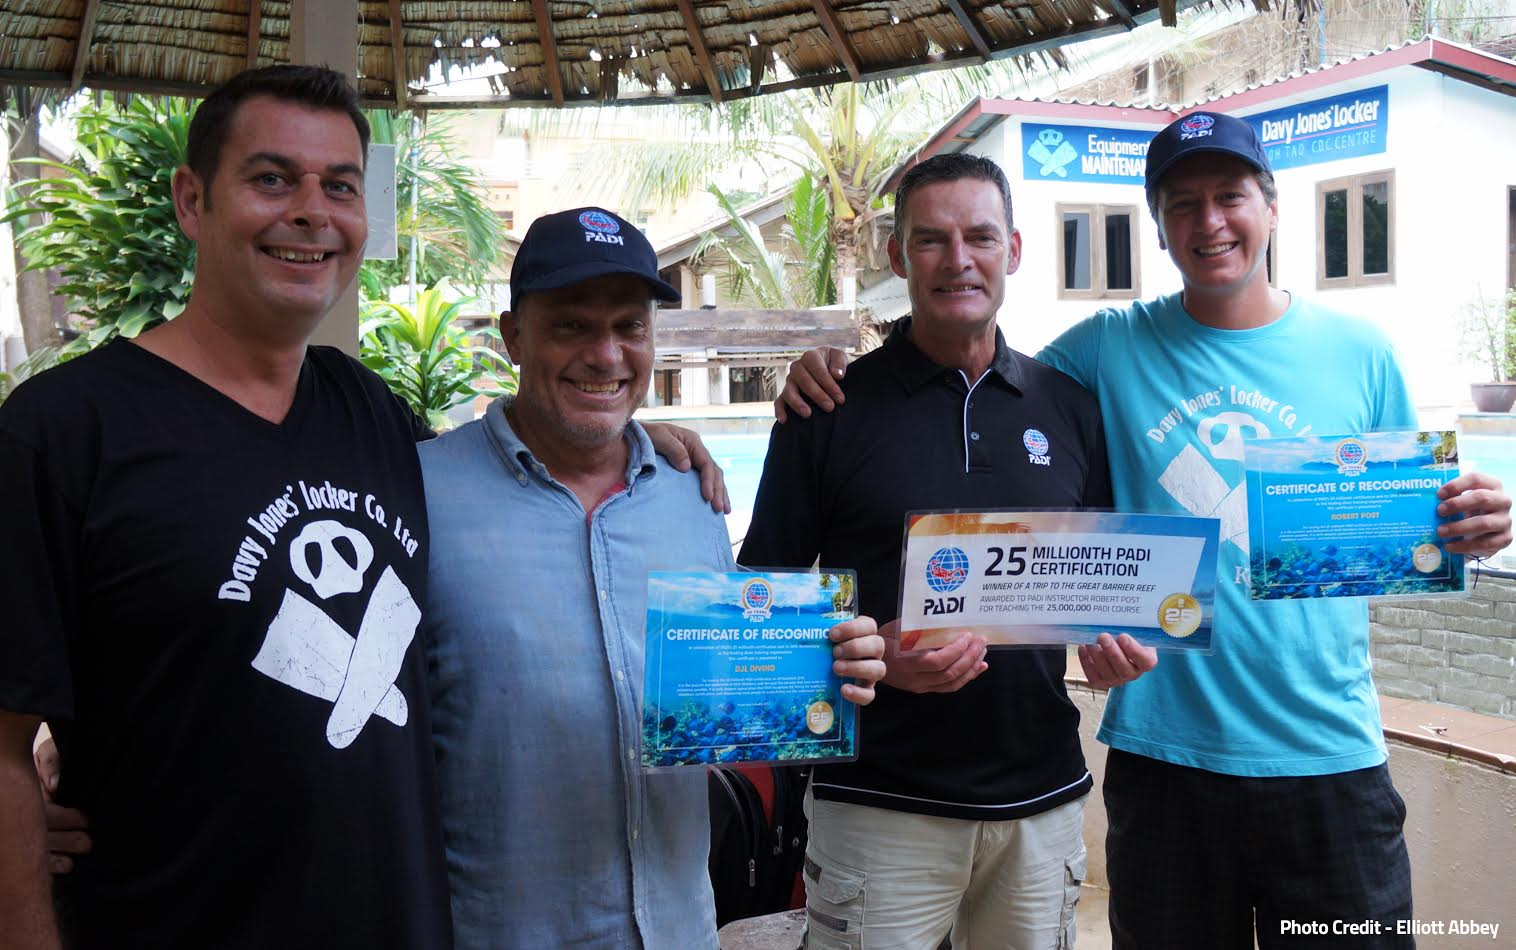 Master Scuba Diver Trainer Bobby Post certified the 25 millionth PADI Open Water Diver.